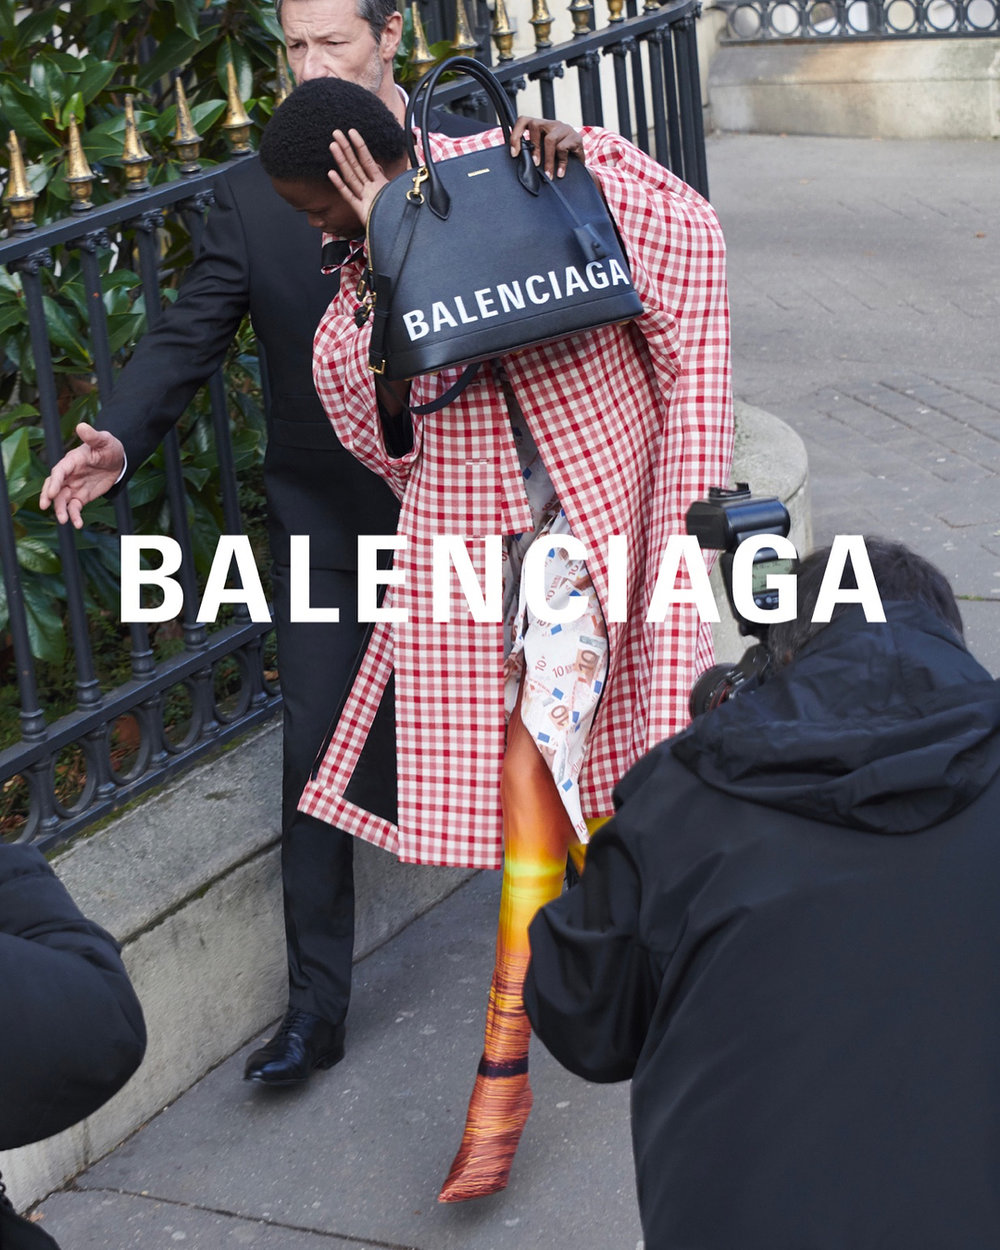 Photo courtesy of Balenciaga